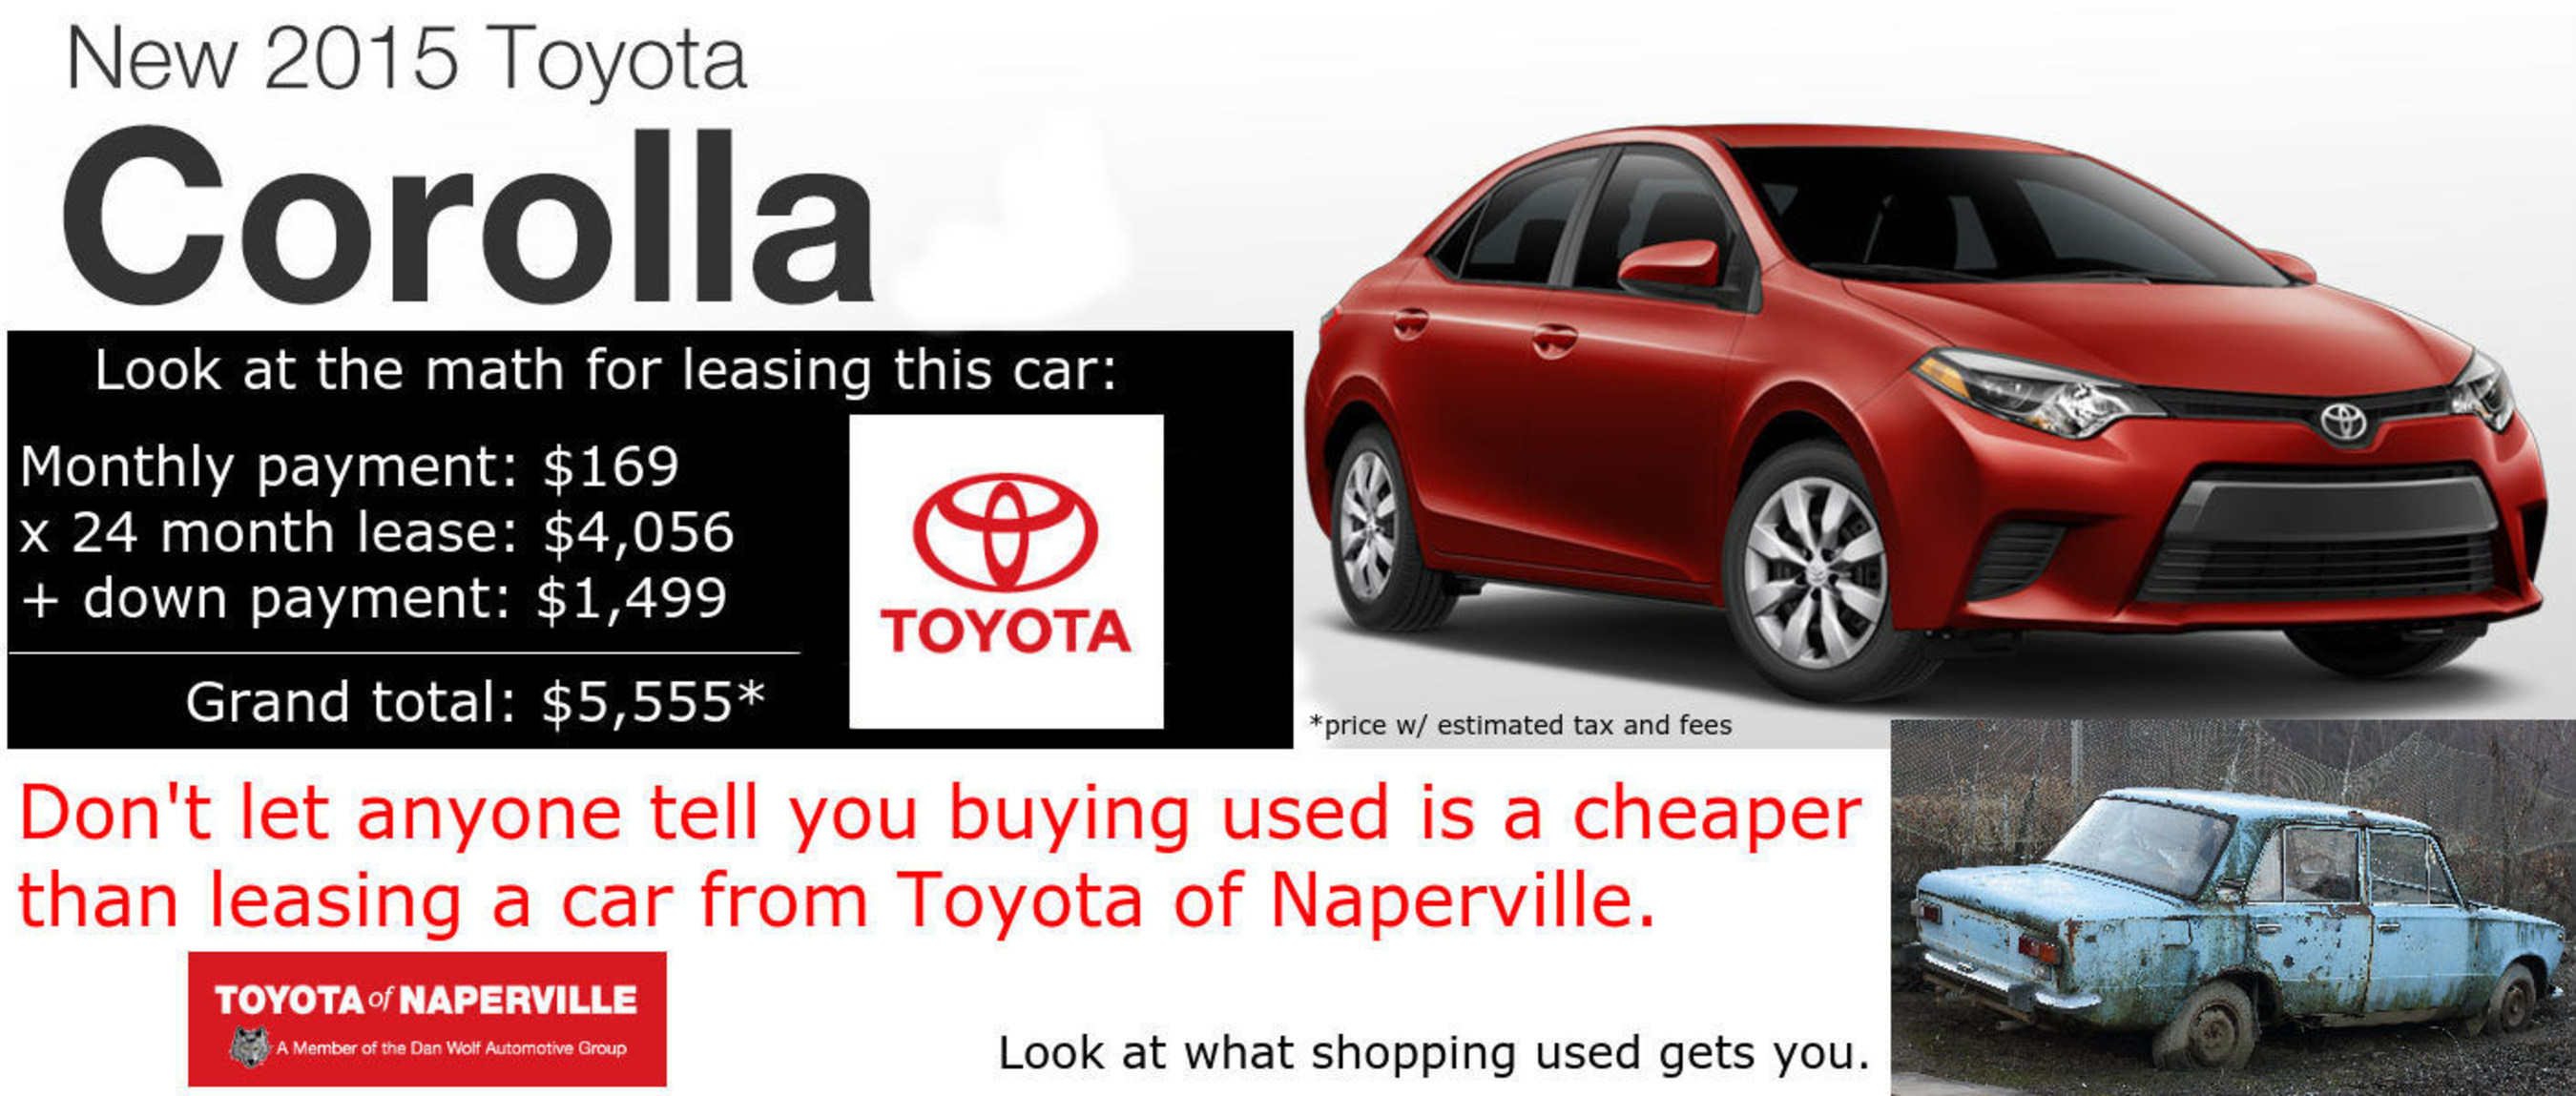 Toyota of Naperville educates customers on leasing advantages